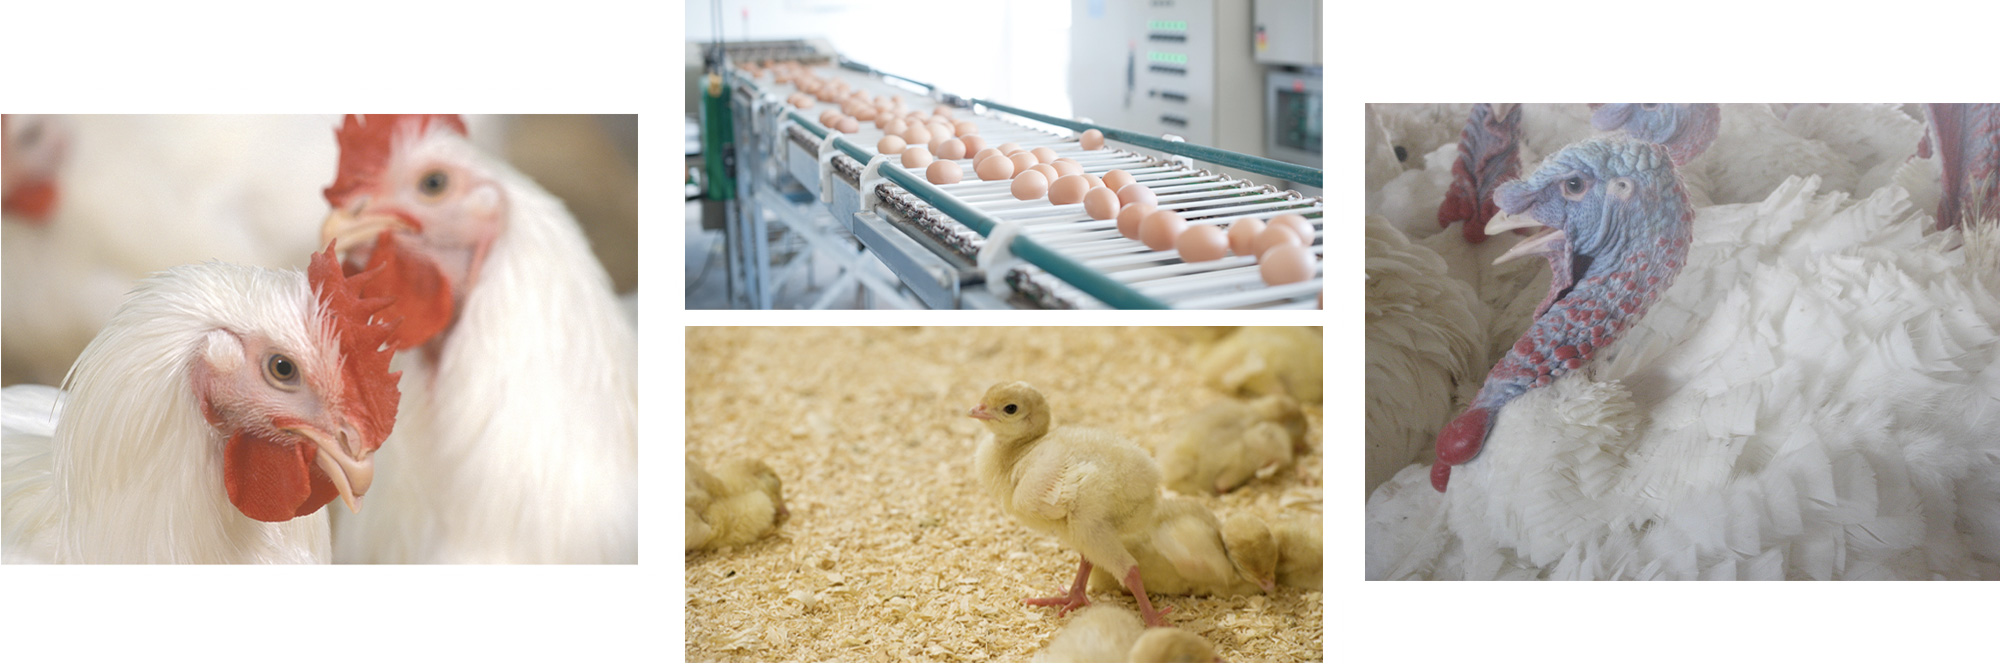 Poultry Industry Council Collage